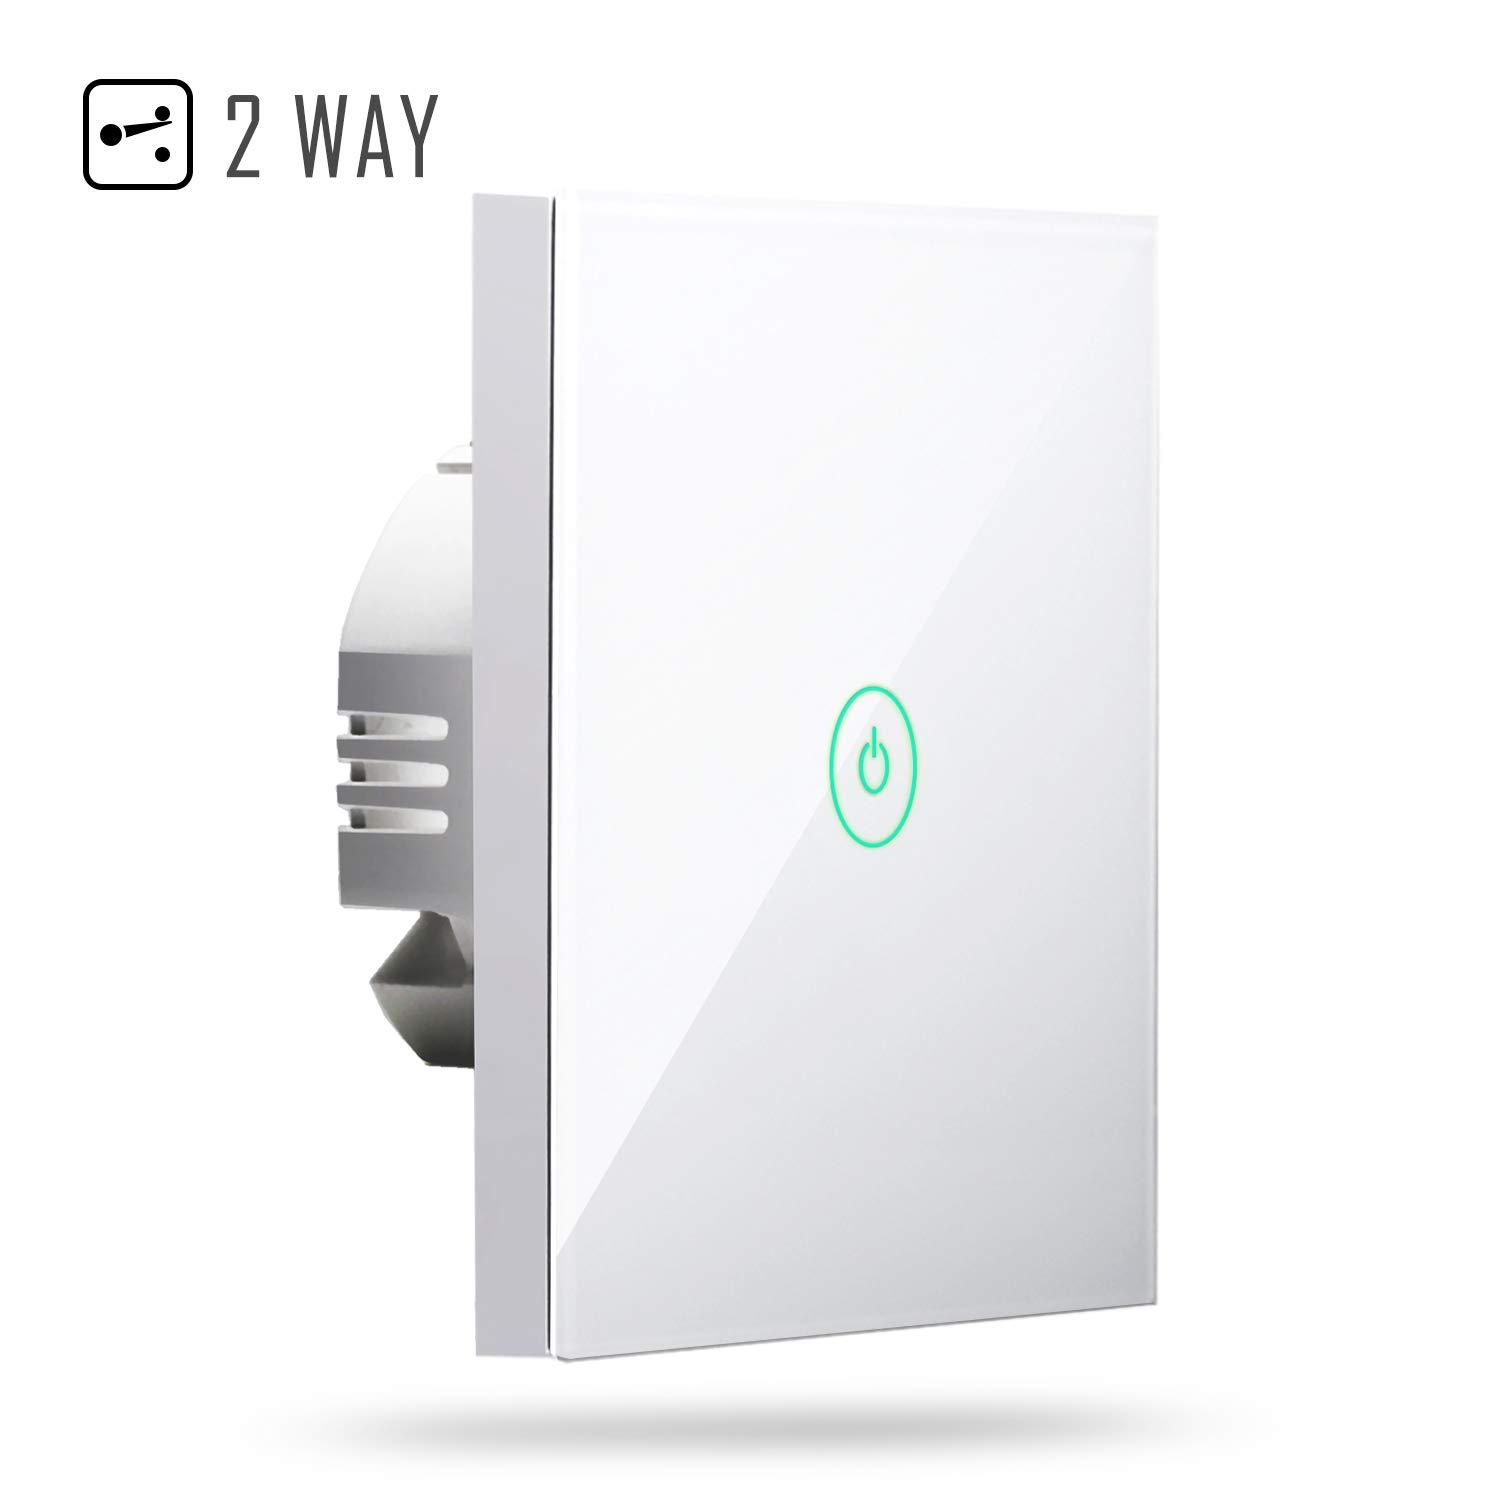 Interruptor táctil de pared Wi-Fi 2 way 1 gang, con pantalla táctil,